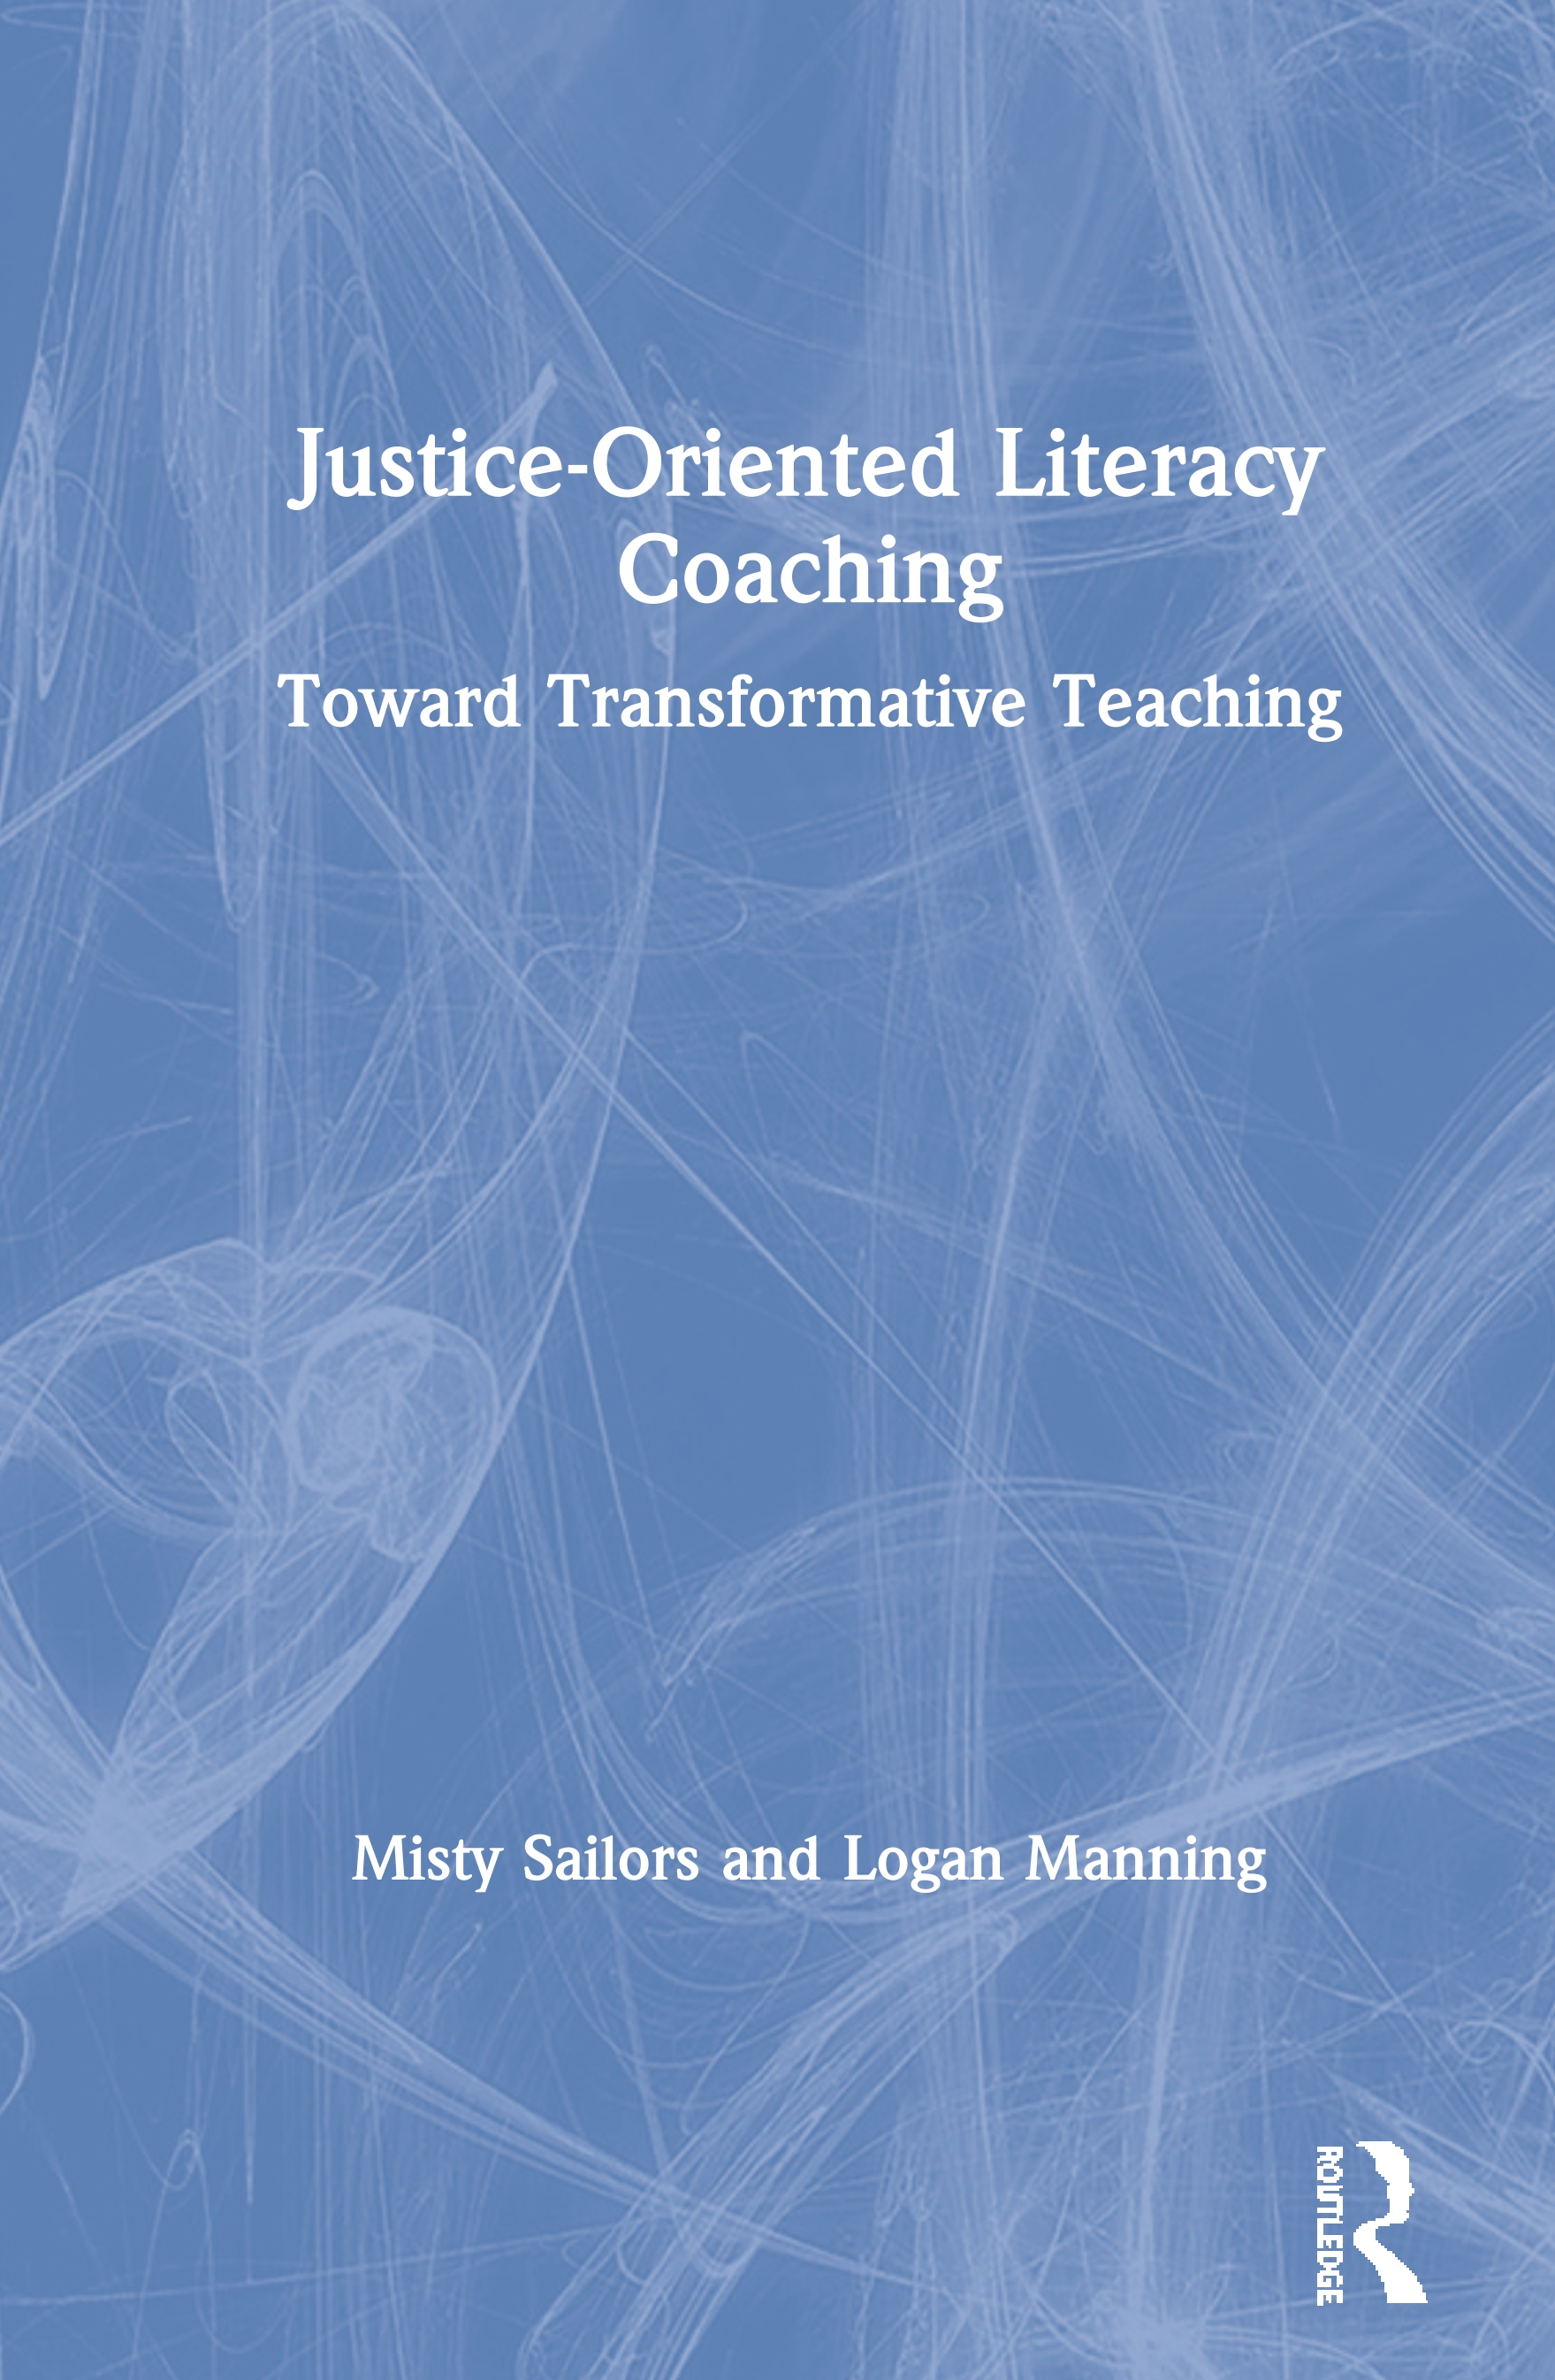 Justice-oriented Literacy Coaching: Toward Transformative Teaching book cover